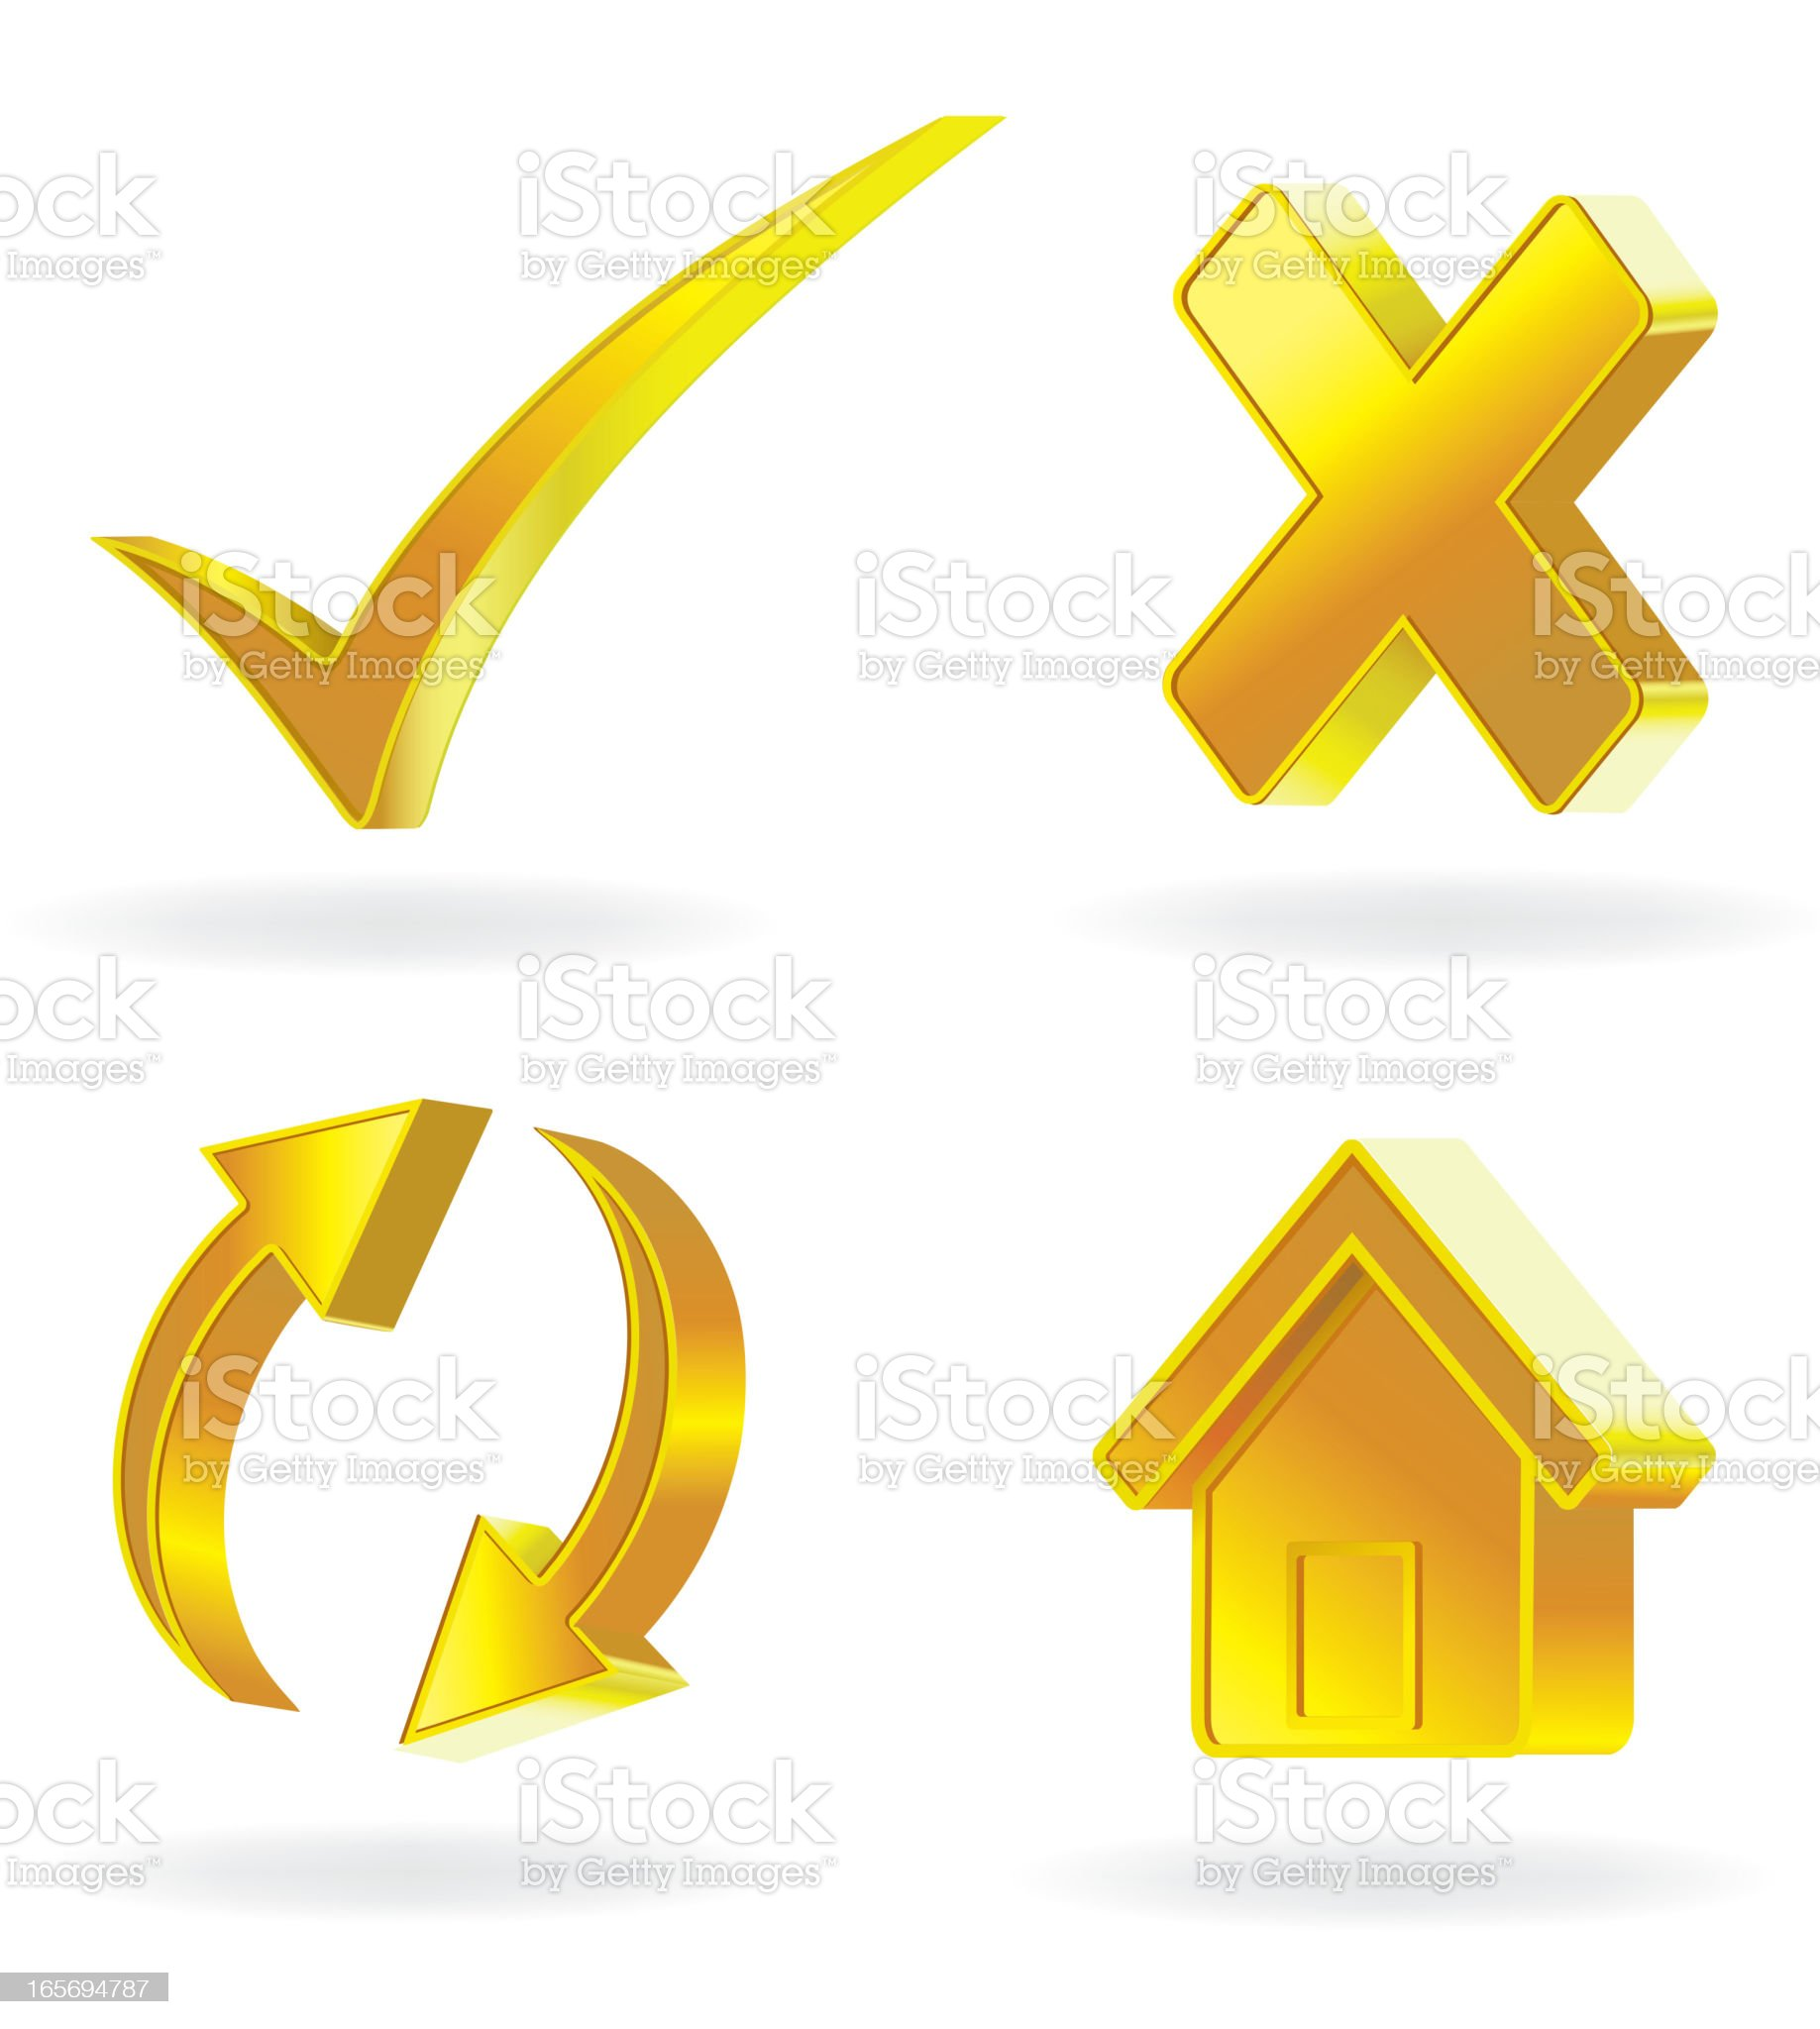 Gold Icon royalty-free stock vector art